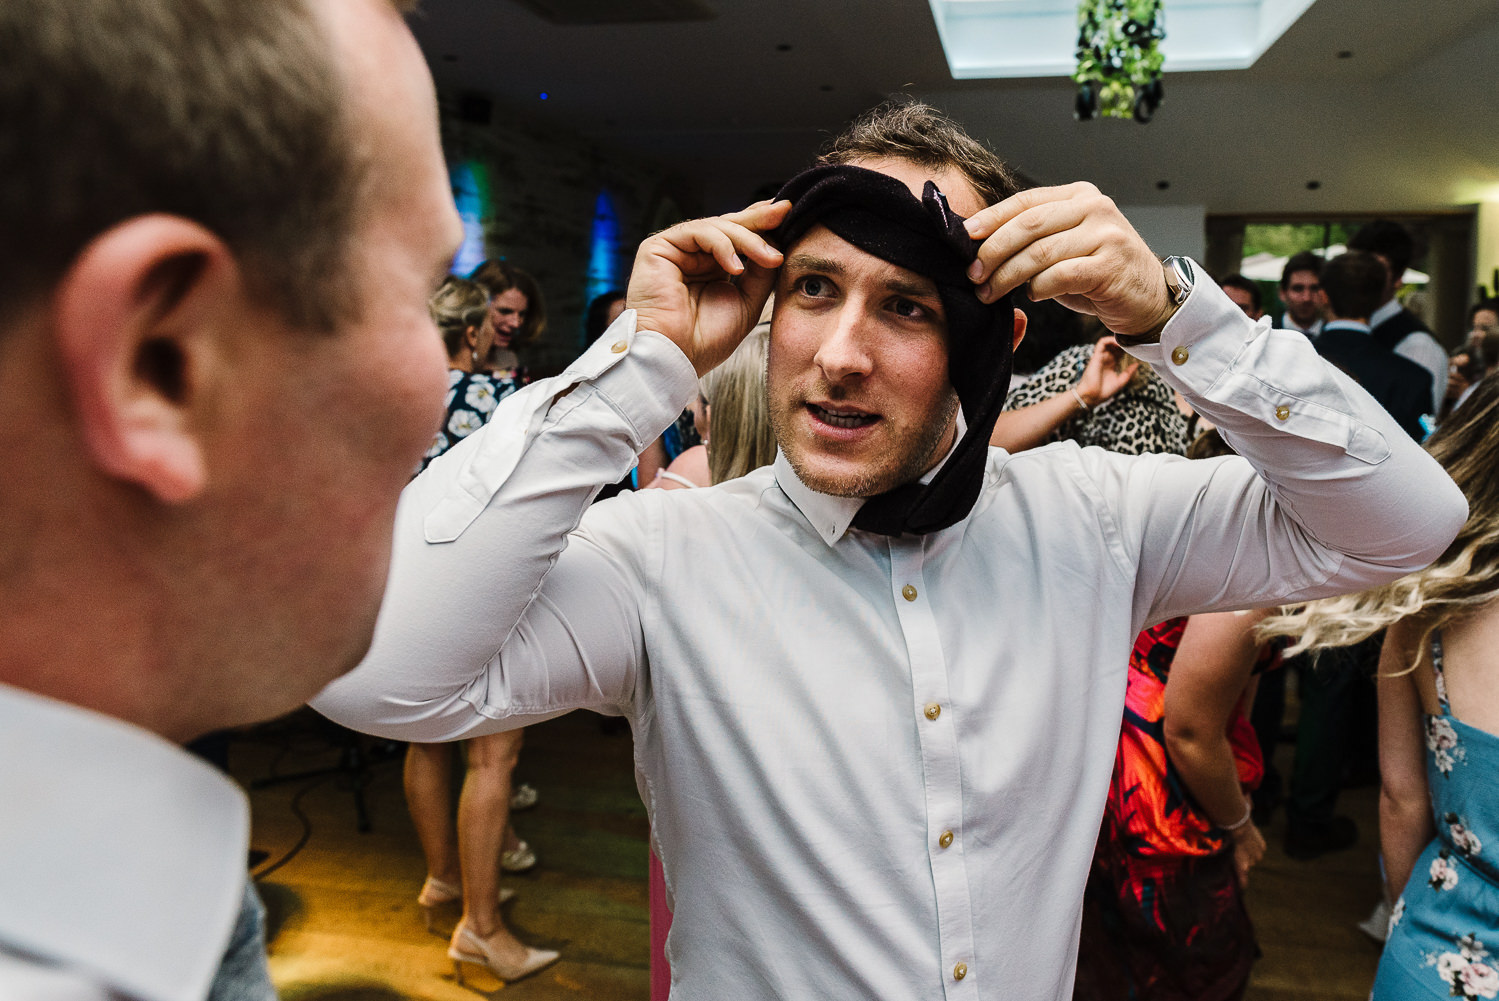 Man with tie around his head dancing